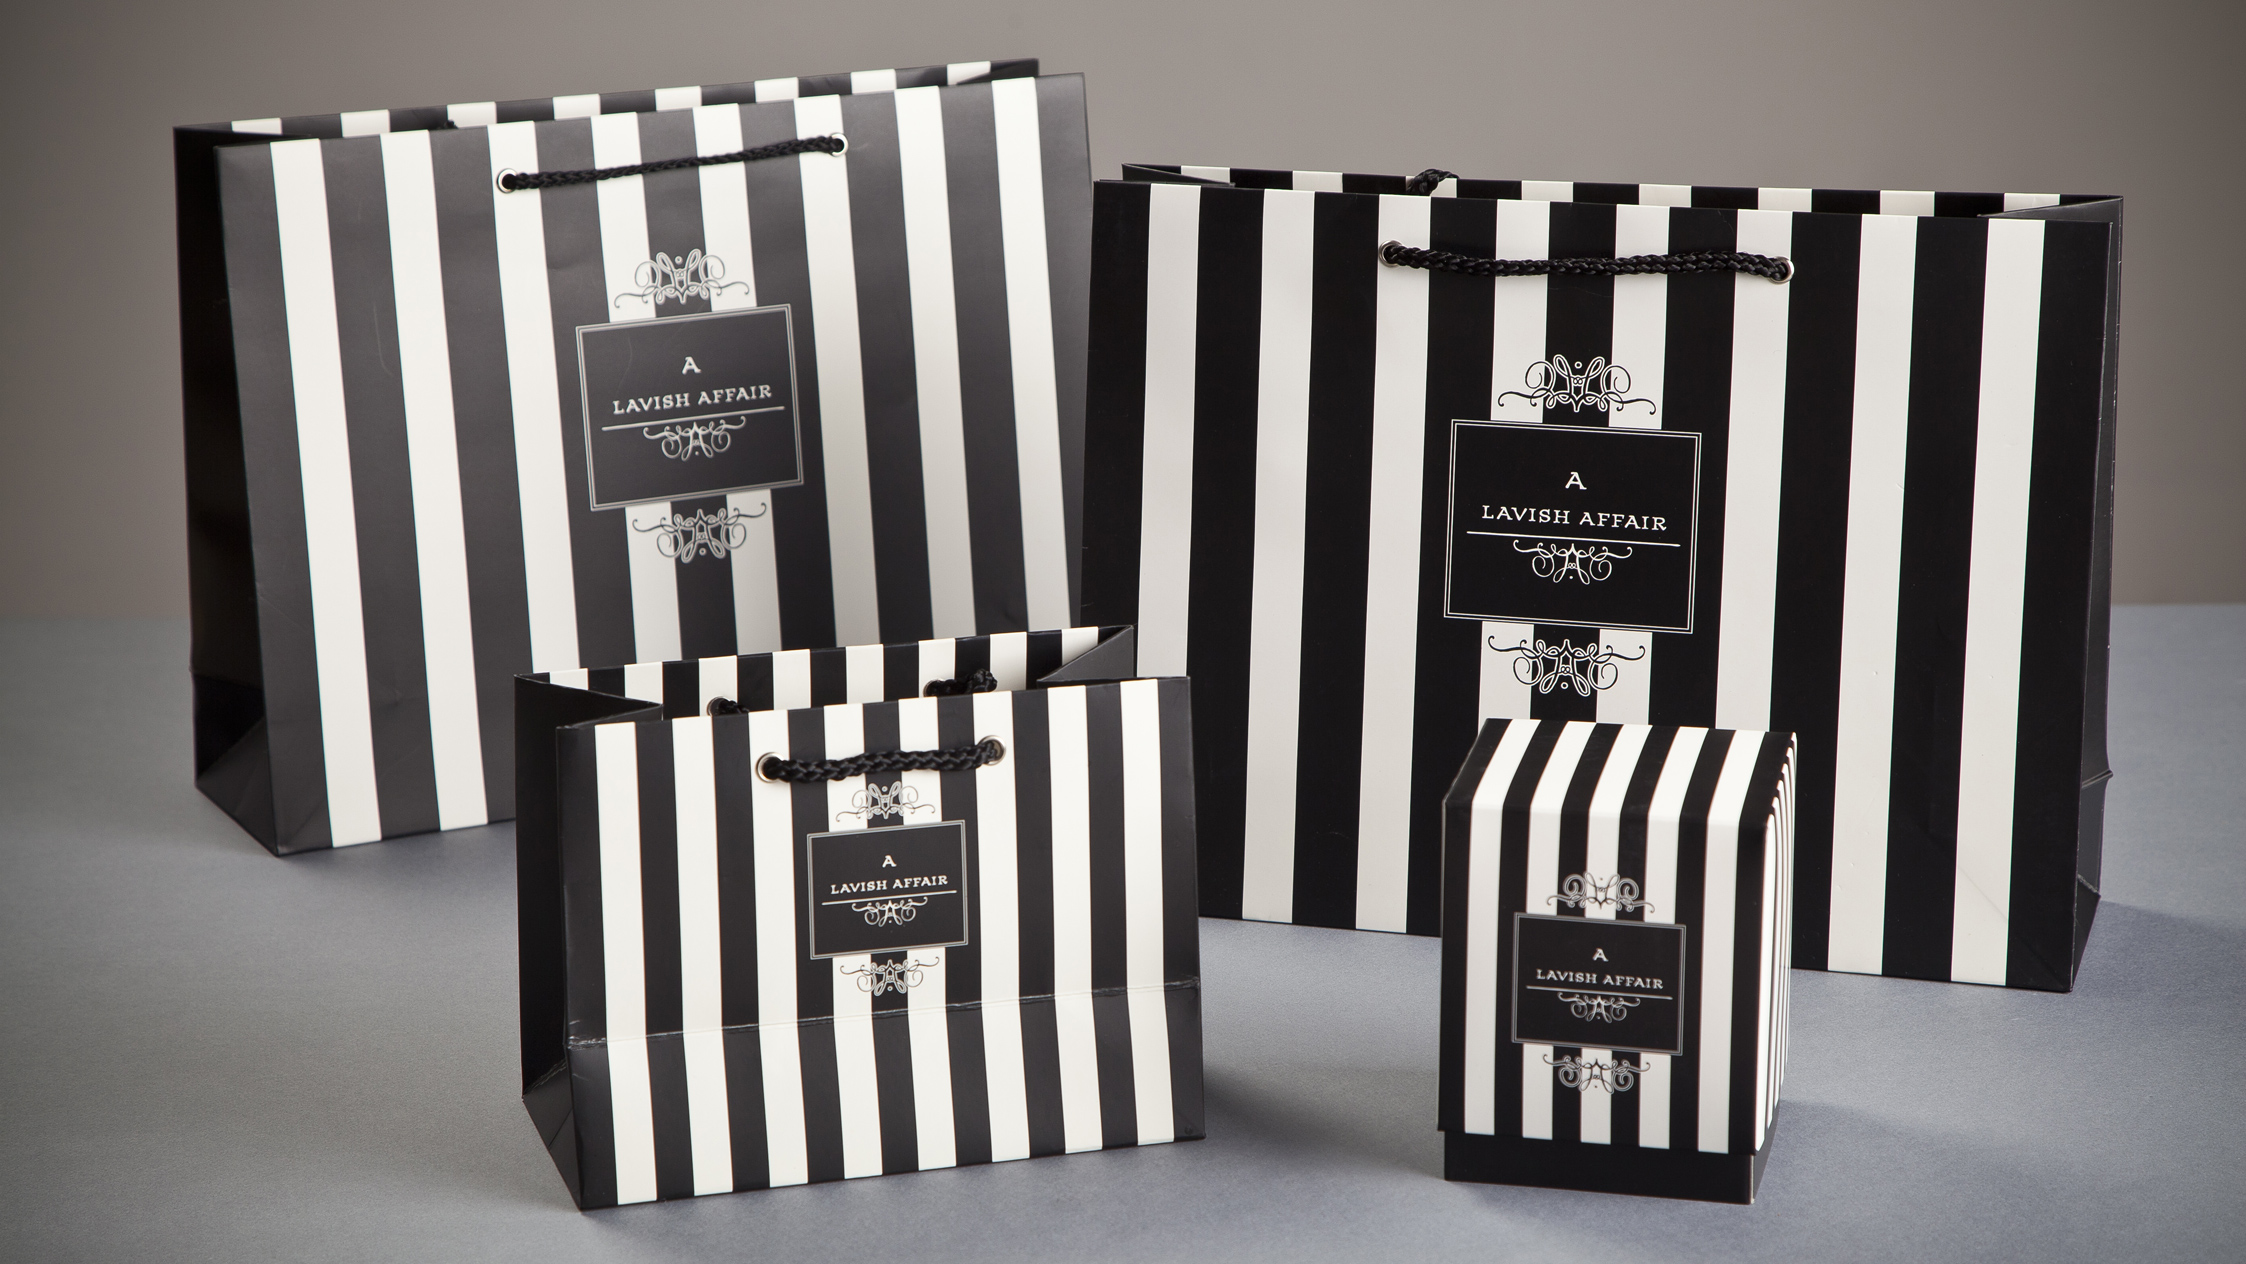 A Lavish Affair Shopping Bags